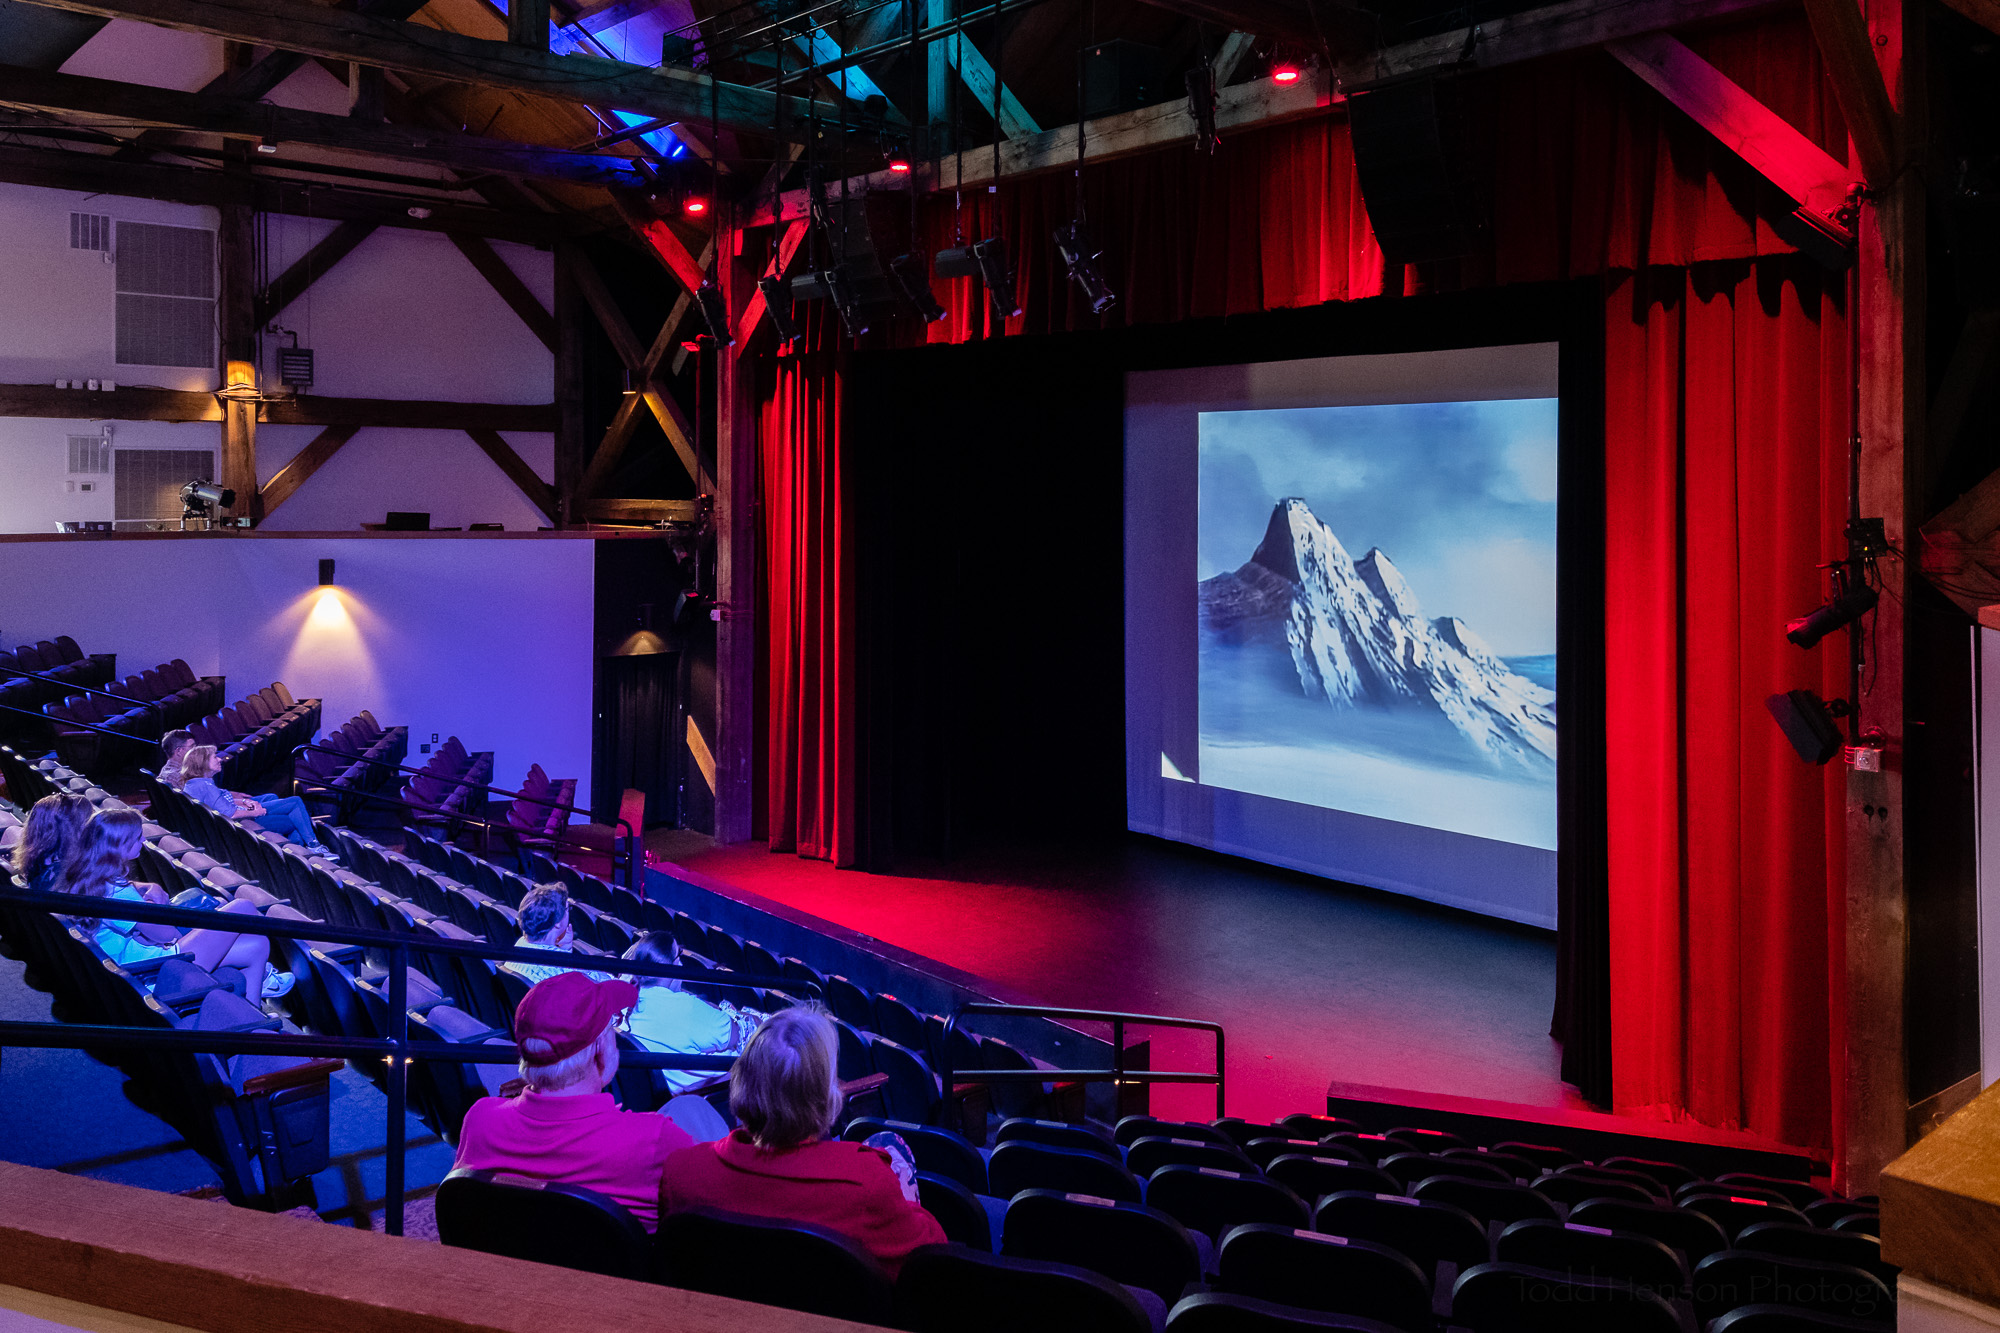 The theater in the Franklin Park Arts Center was showing a documentary about Bob Ross